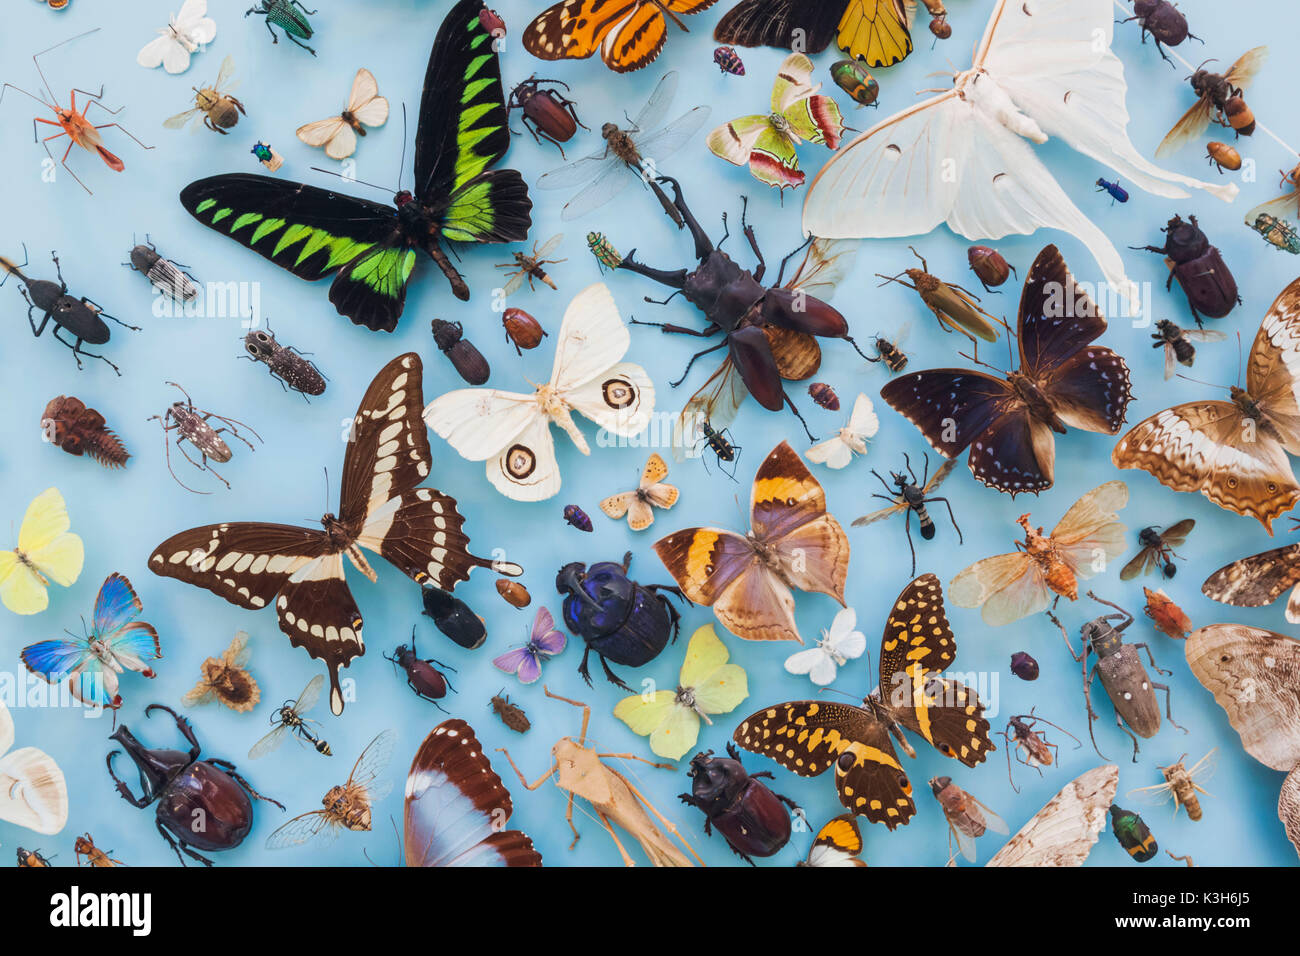 England, Oxfordshire, Oxford, Museum of Natural History, Display of Insects and Butterflies - Stock Image